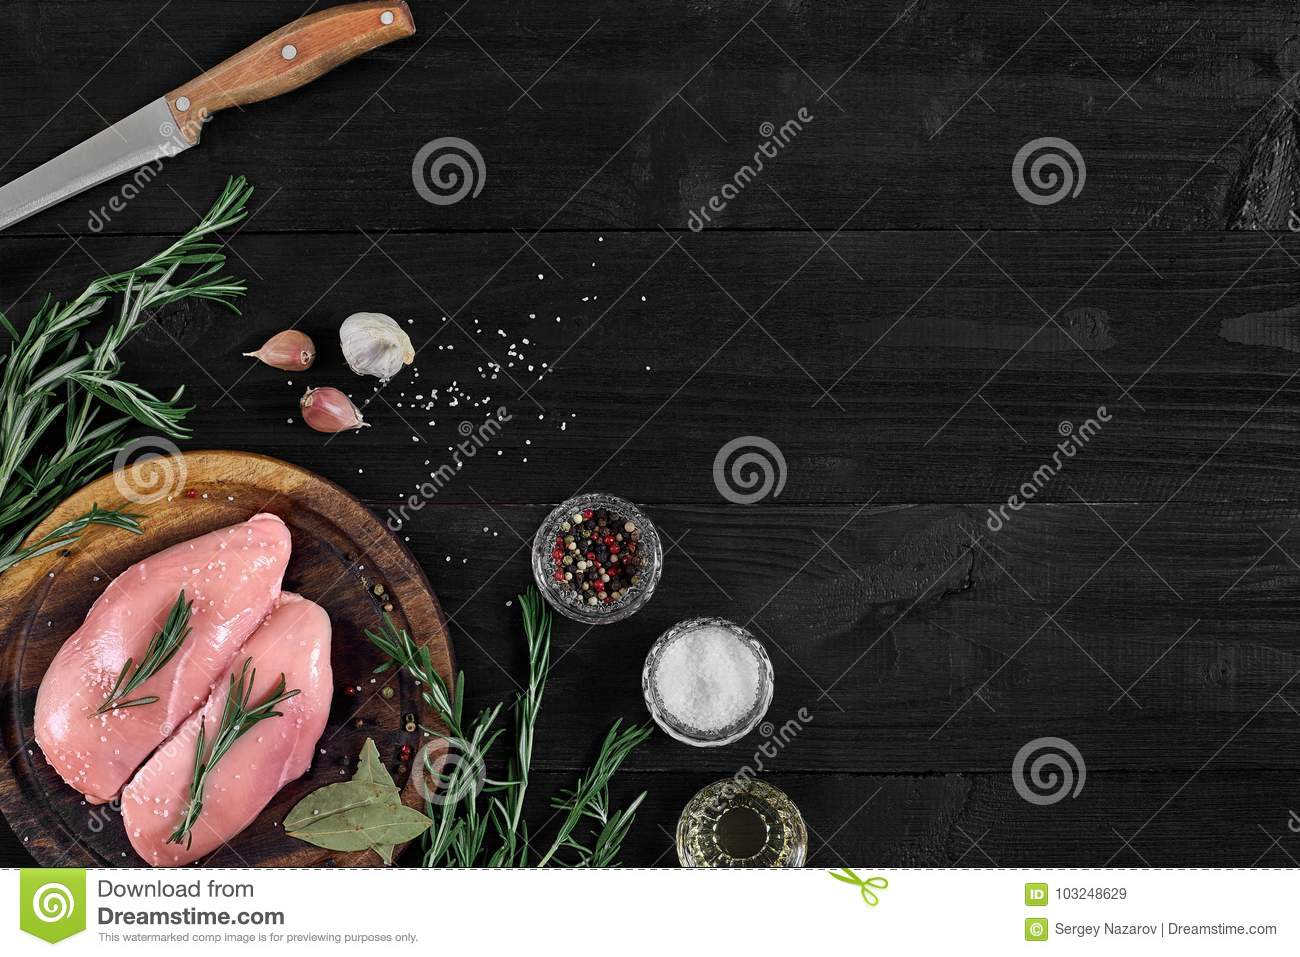 Raw chicken breast fillets on wooden cutting board with herbs and spices. Top view with copy space